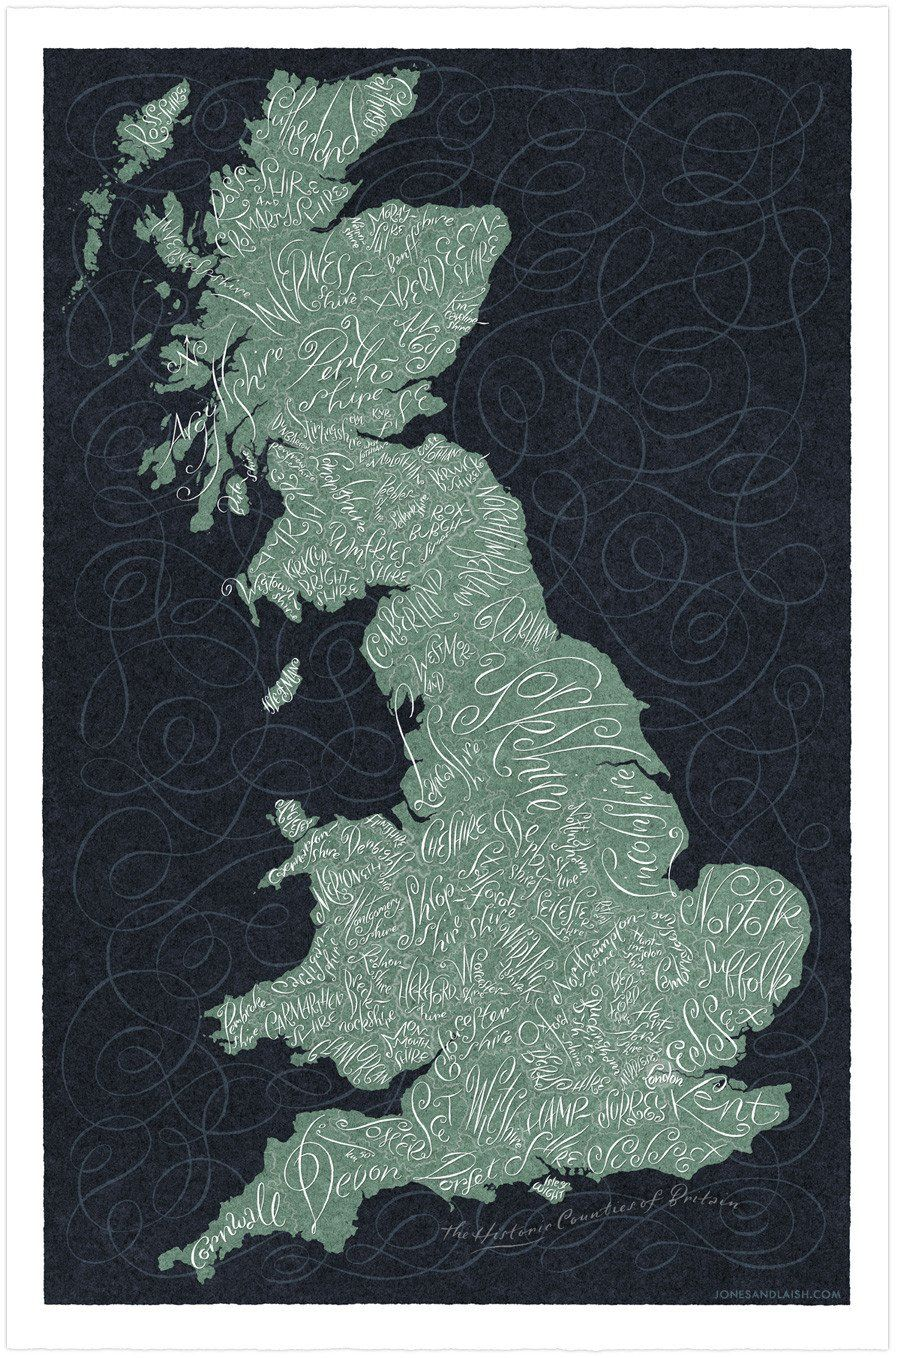 Historic Counties of England Map © James Laish